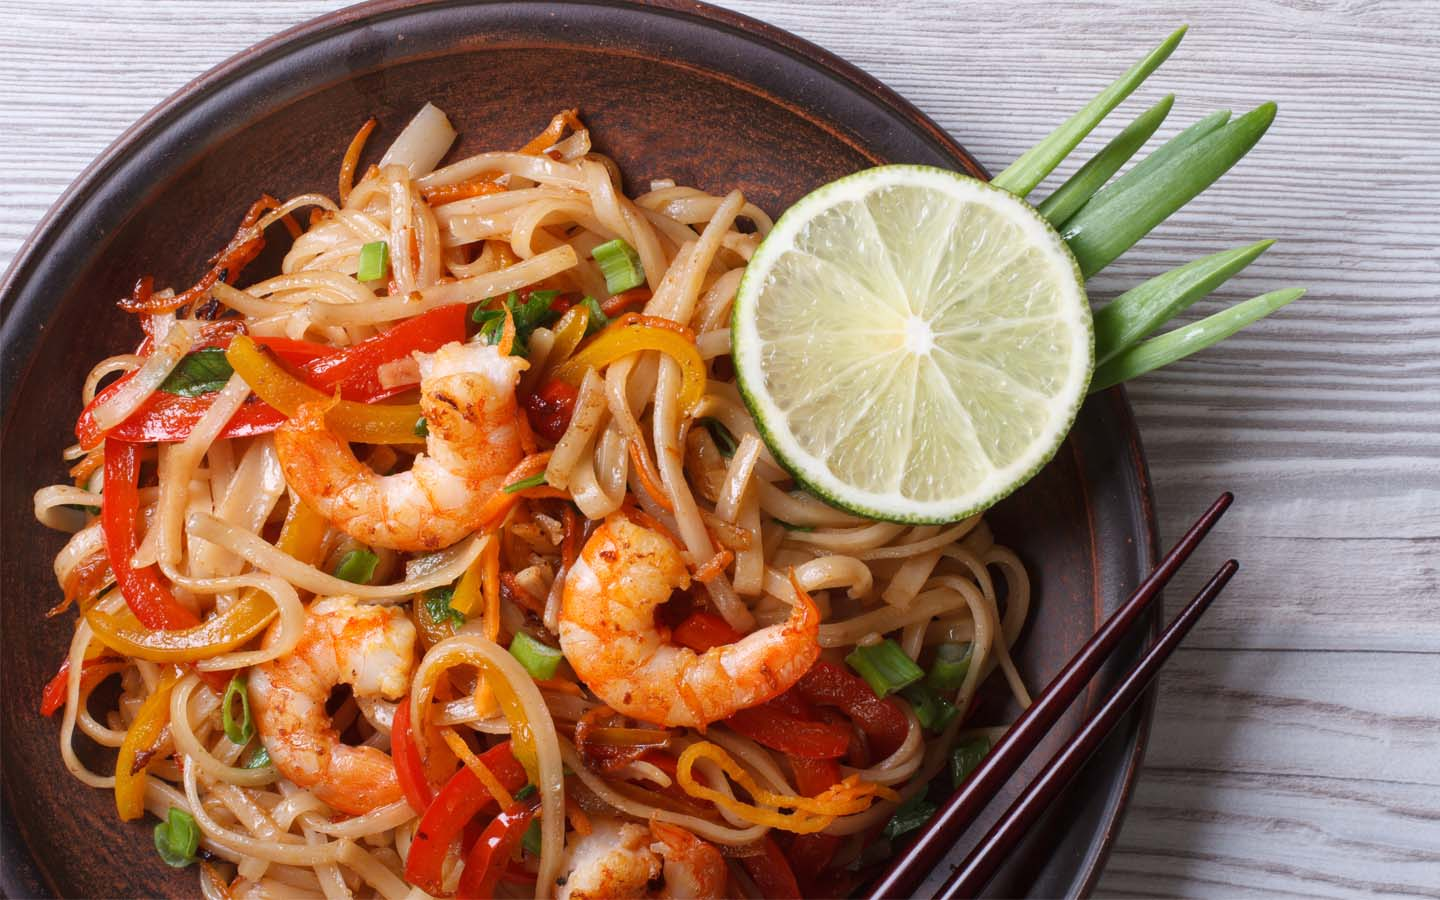 Asian rice noodles with shrimp and vegetables.